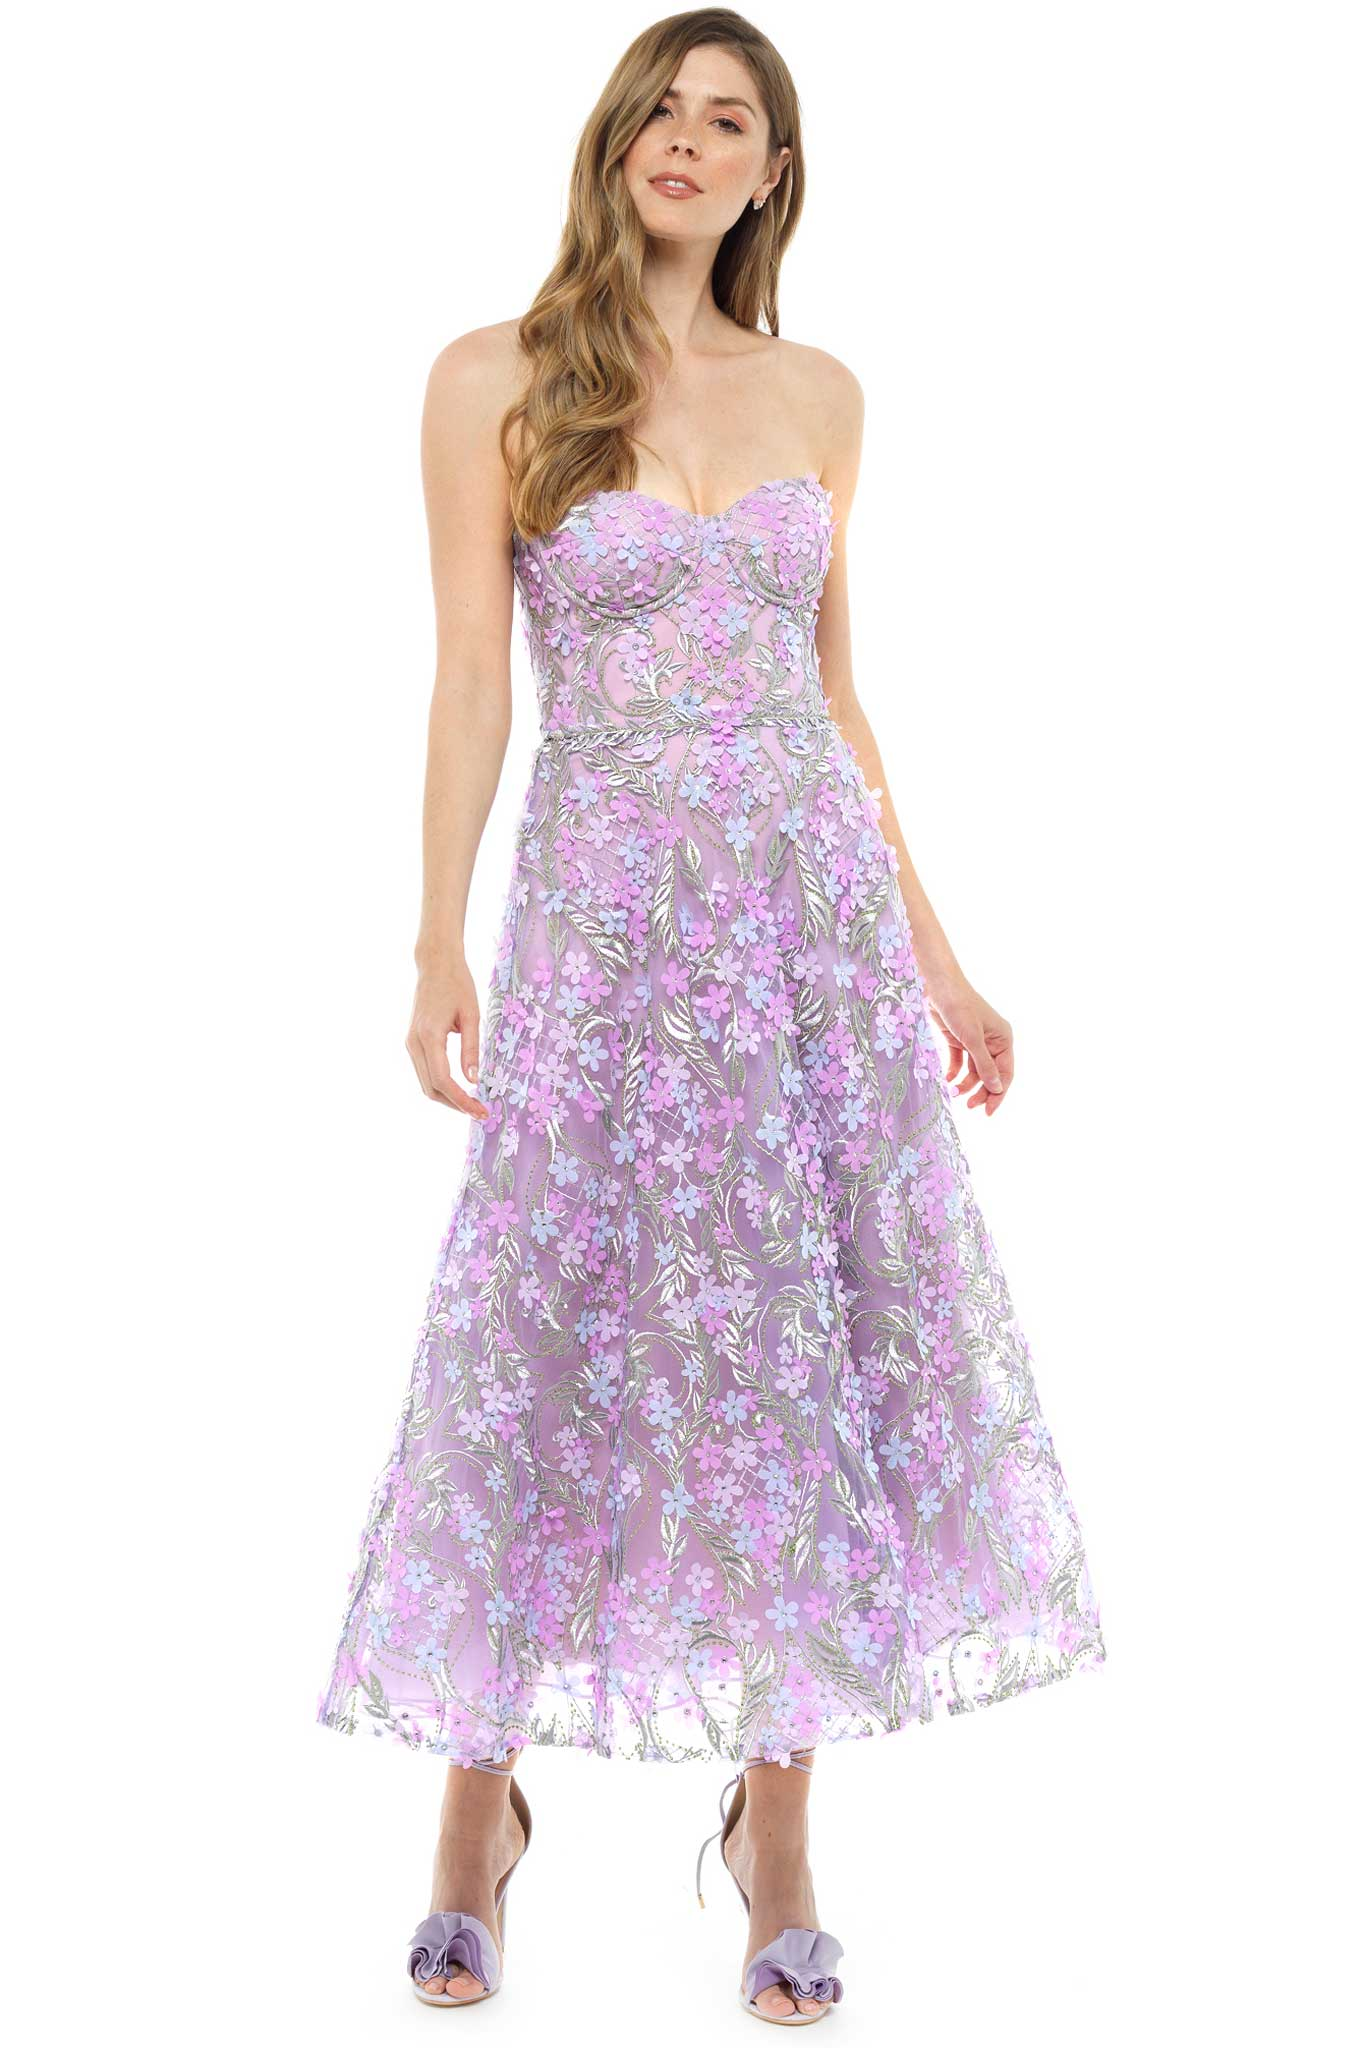 Marchesa Notte Lavender Floral Midi Dress